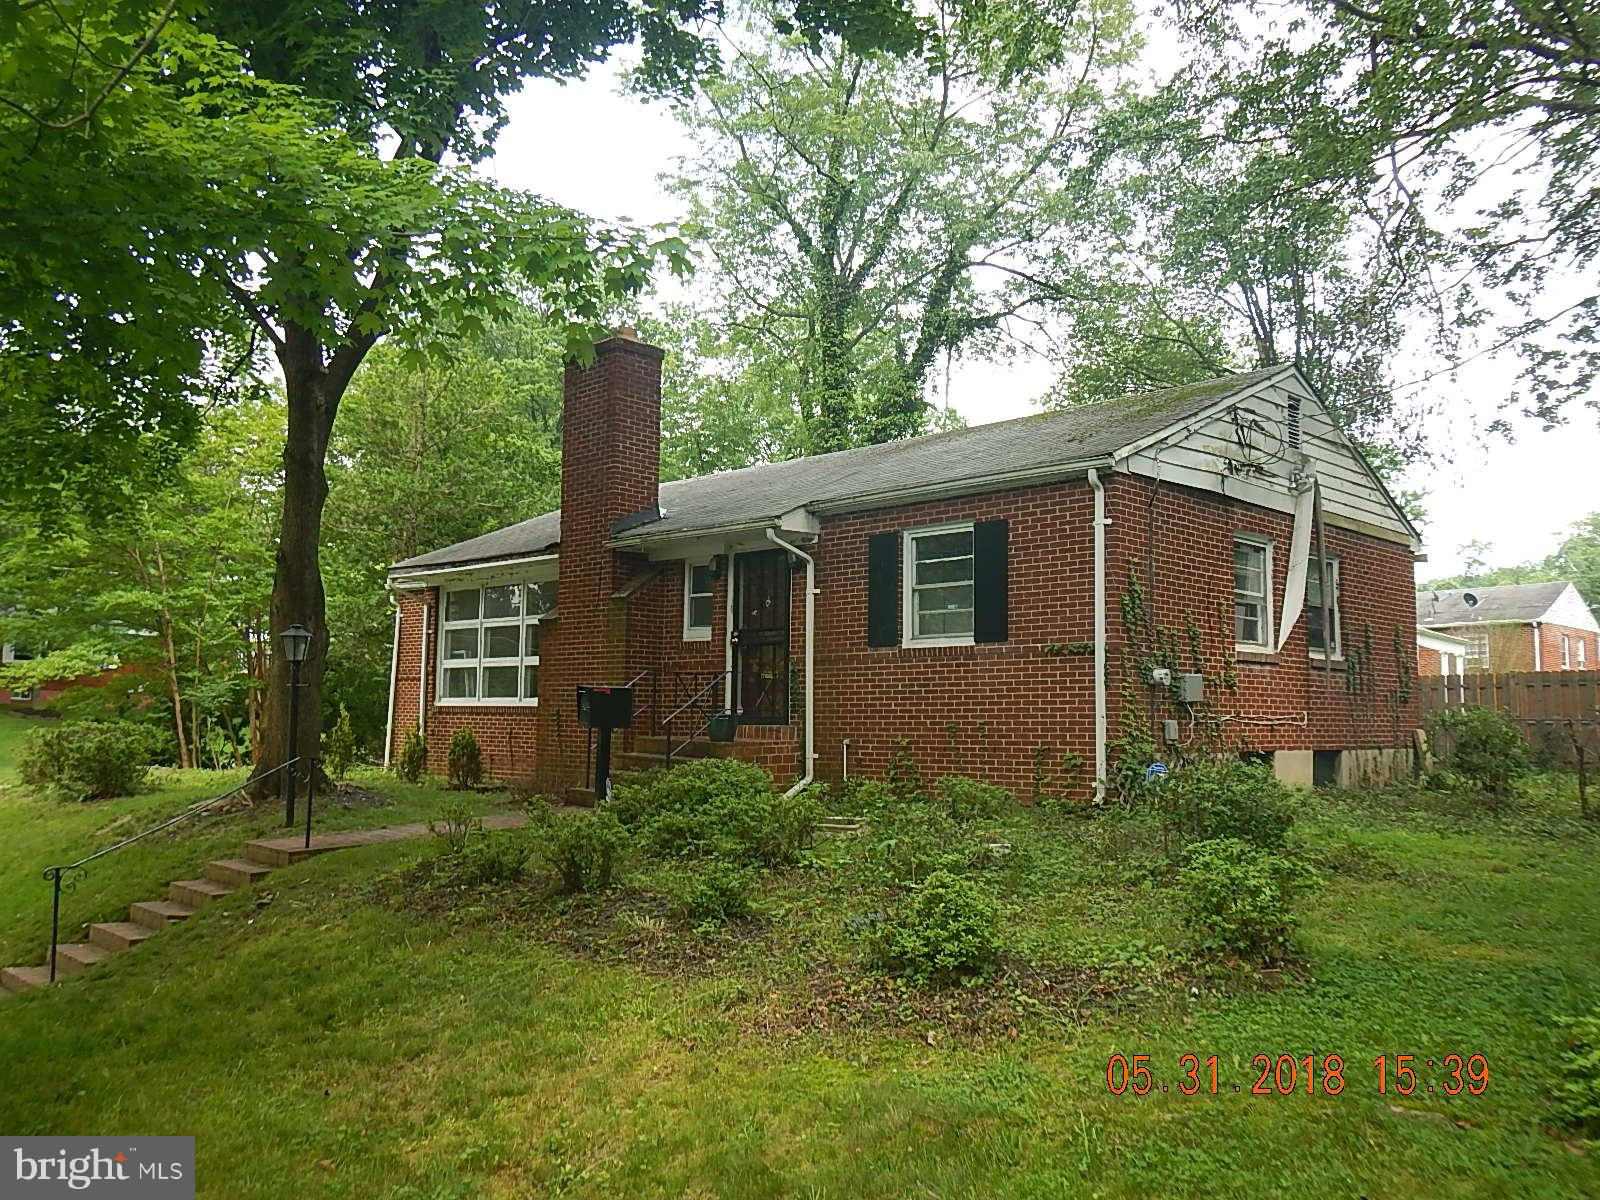 1013 NOLCREST DRIVE, SILVER SPRING, MD 20903